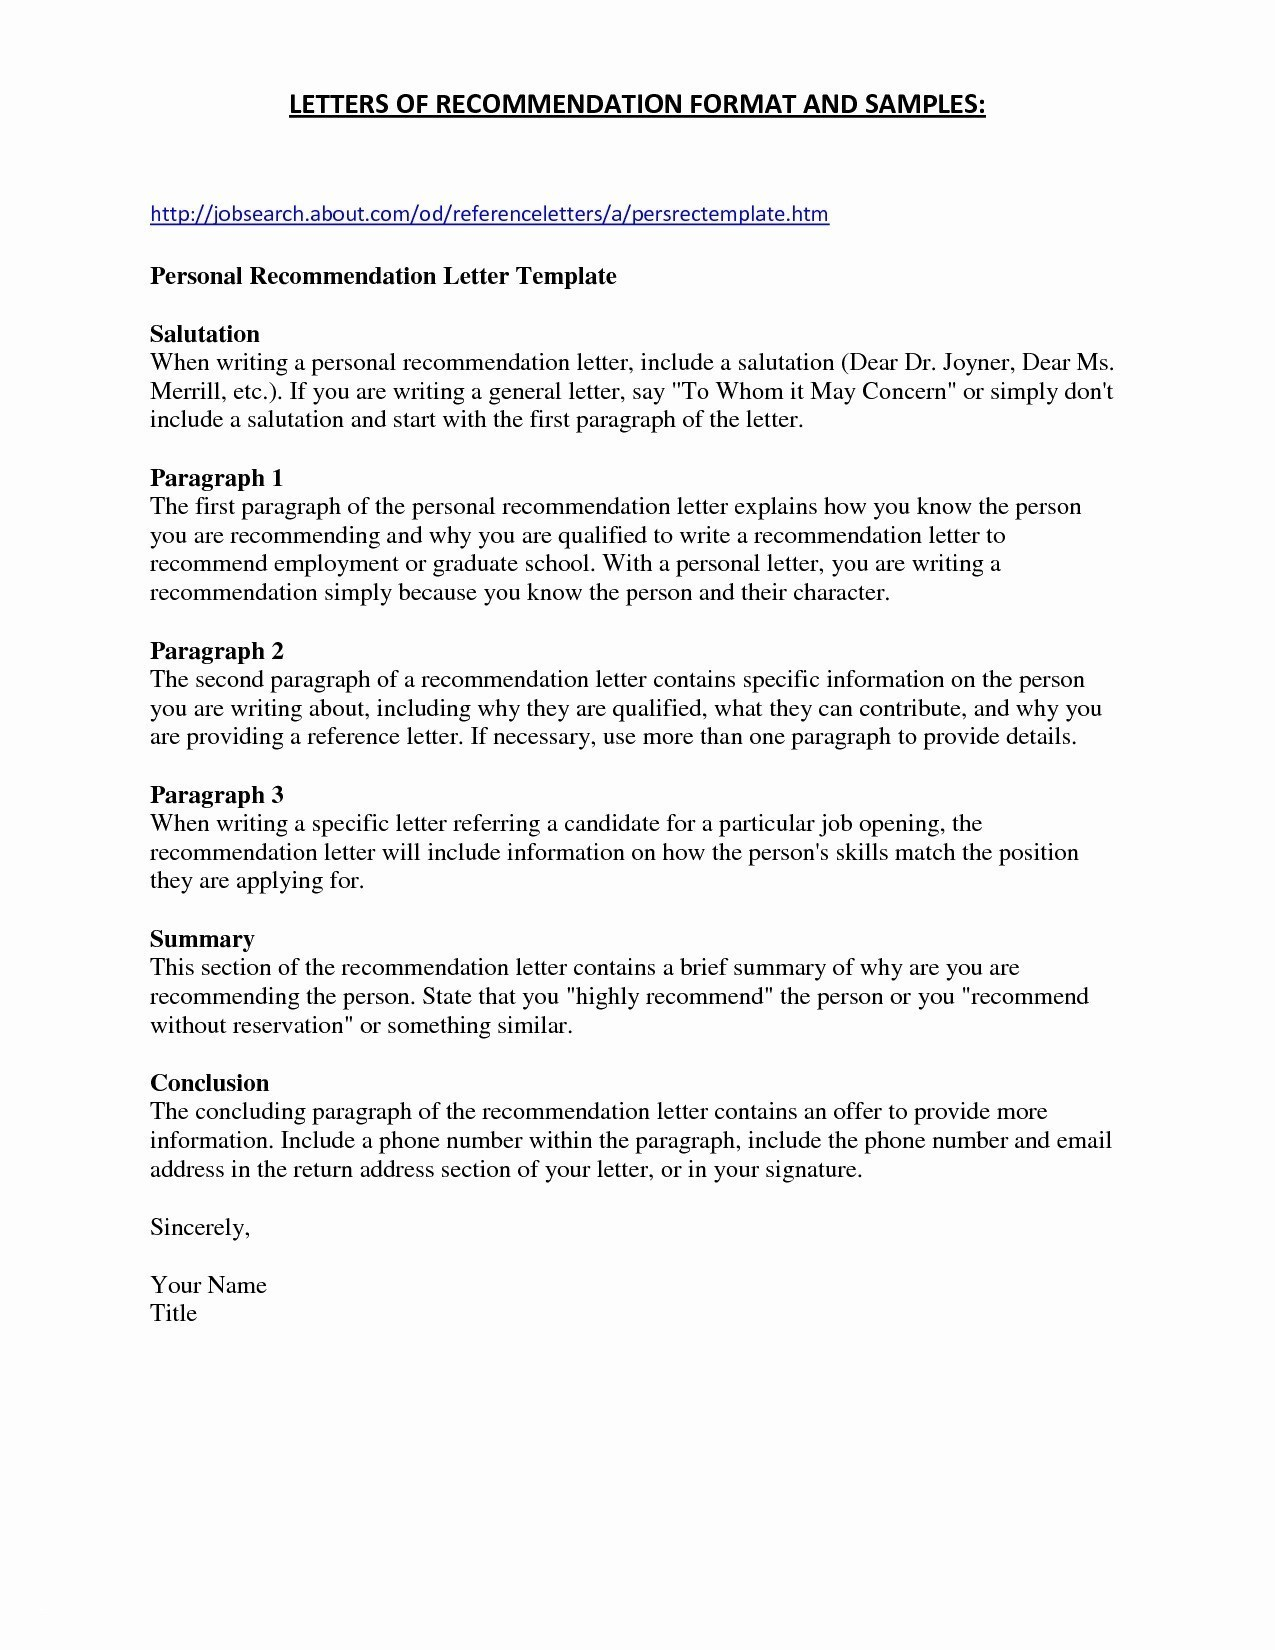 finance manager resume sample example-Finance Manager Resume Sample 11-j